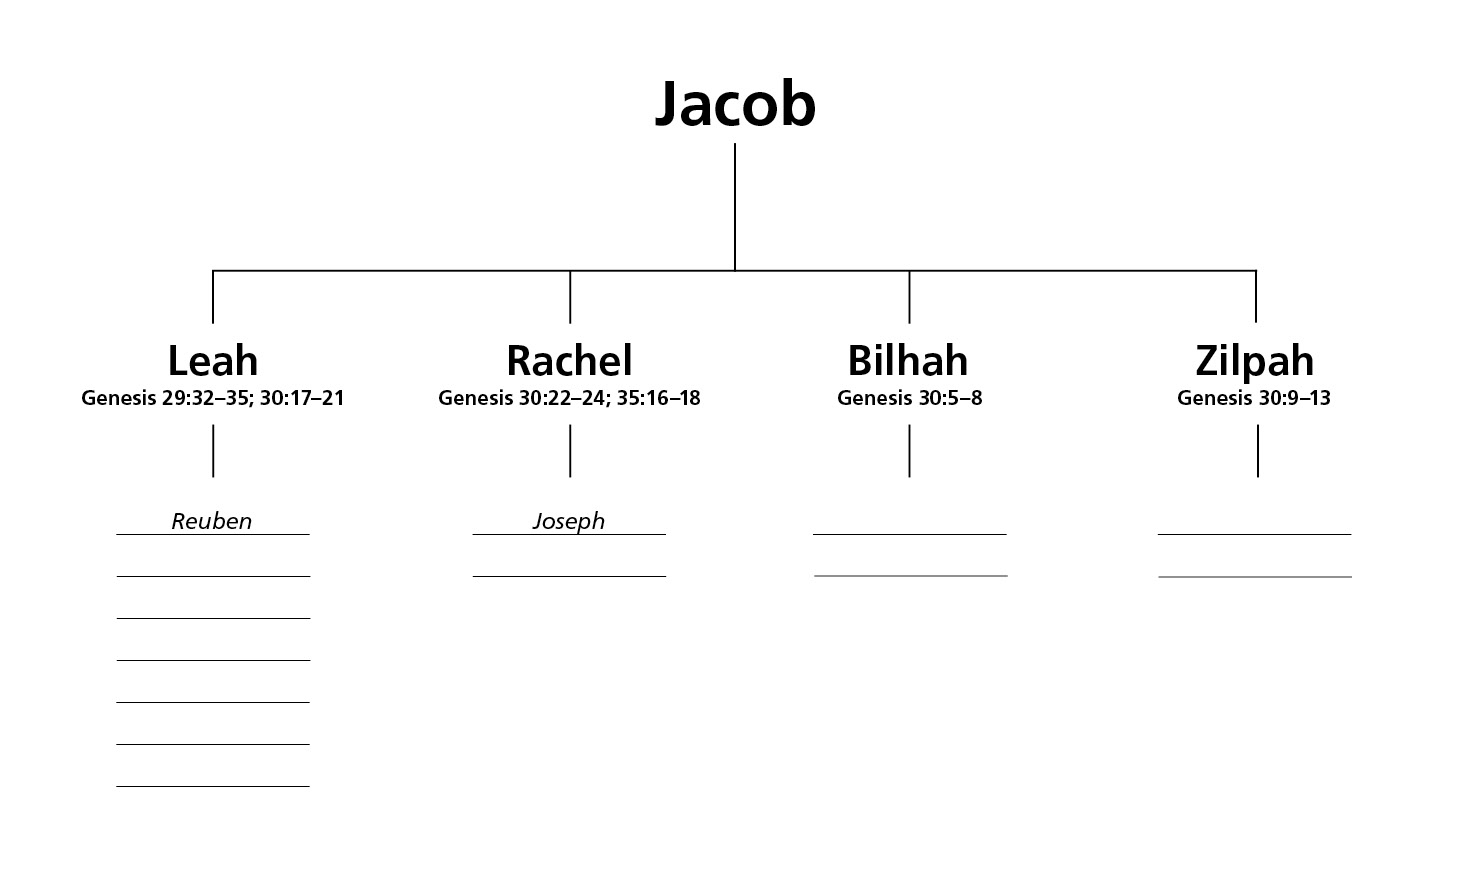 an analysis of the book of genesis and the role of jacob in it Literary analysis (genesis) download literary analysis the book of genesis composition, reception at the end of genesis, jacob's household goes down to.